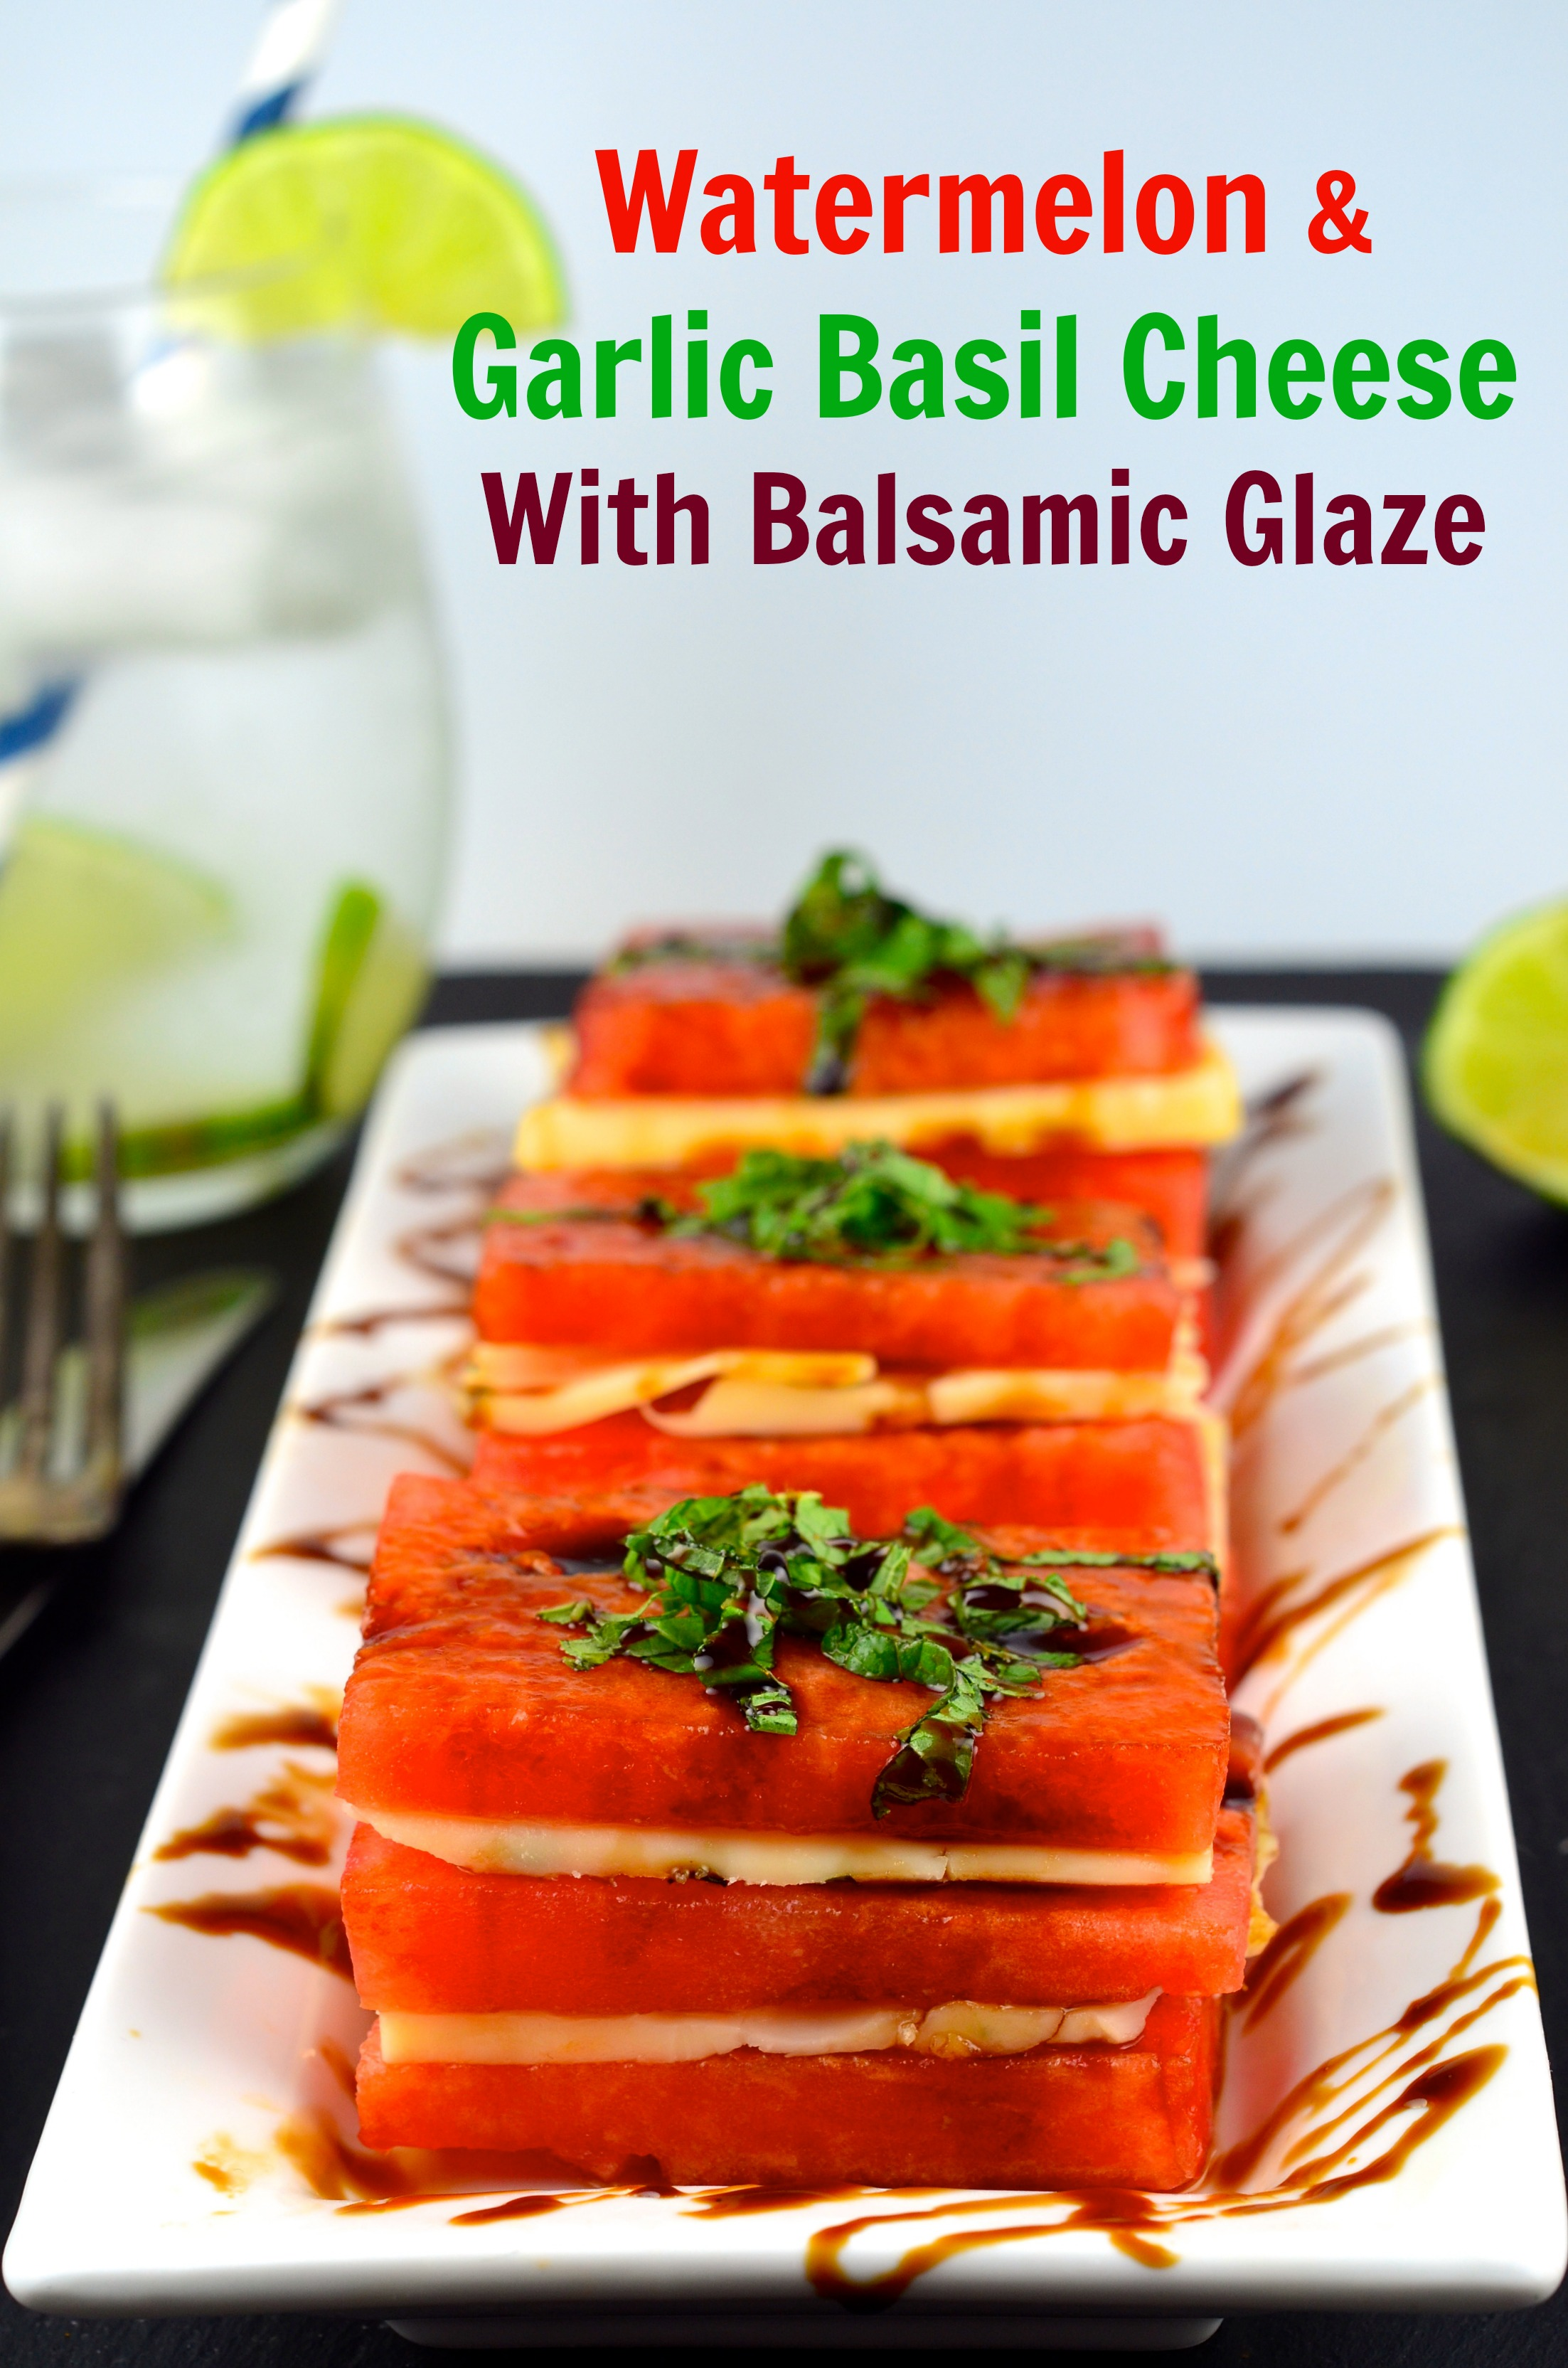 Watermelon and Cheese Napoleon with Balsamic Glaze | Easy Finger Foods | Recipes And Ideas For Your Party